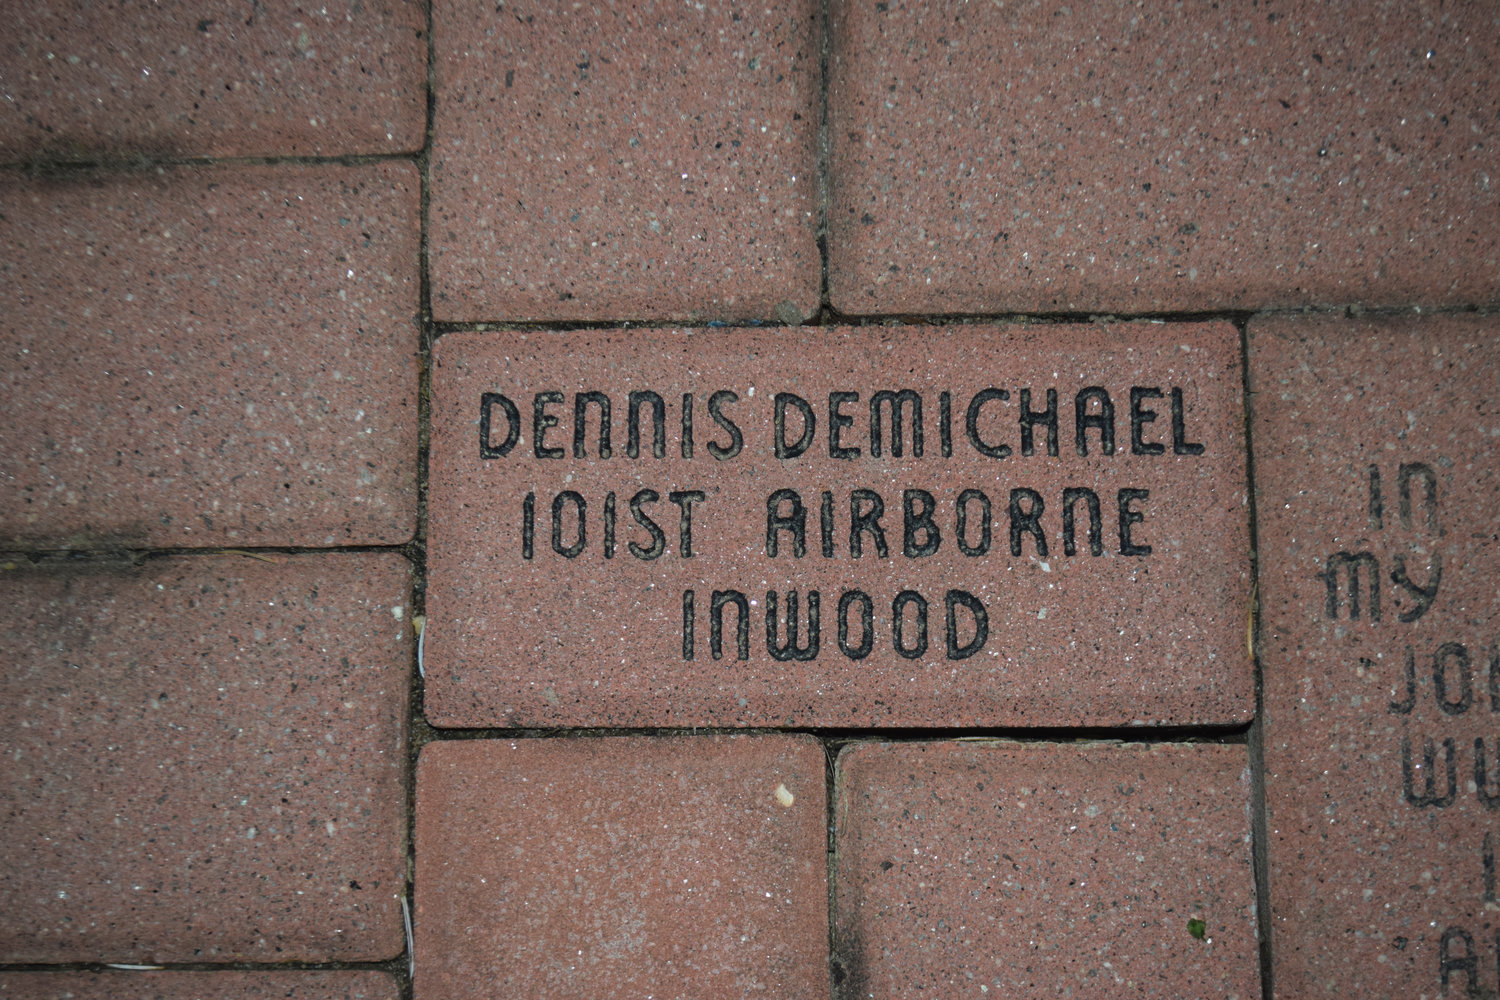 The brick in memory of Dennis DeMichael is among several that adorn the walkway by the veterans memorial in Andrew J. Parise Cedarhurst Park.